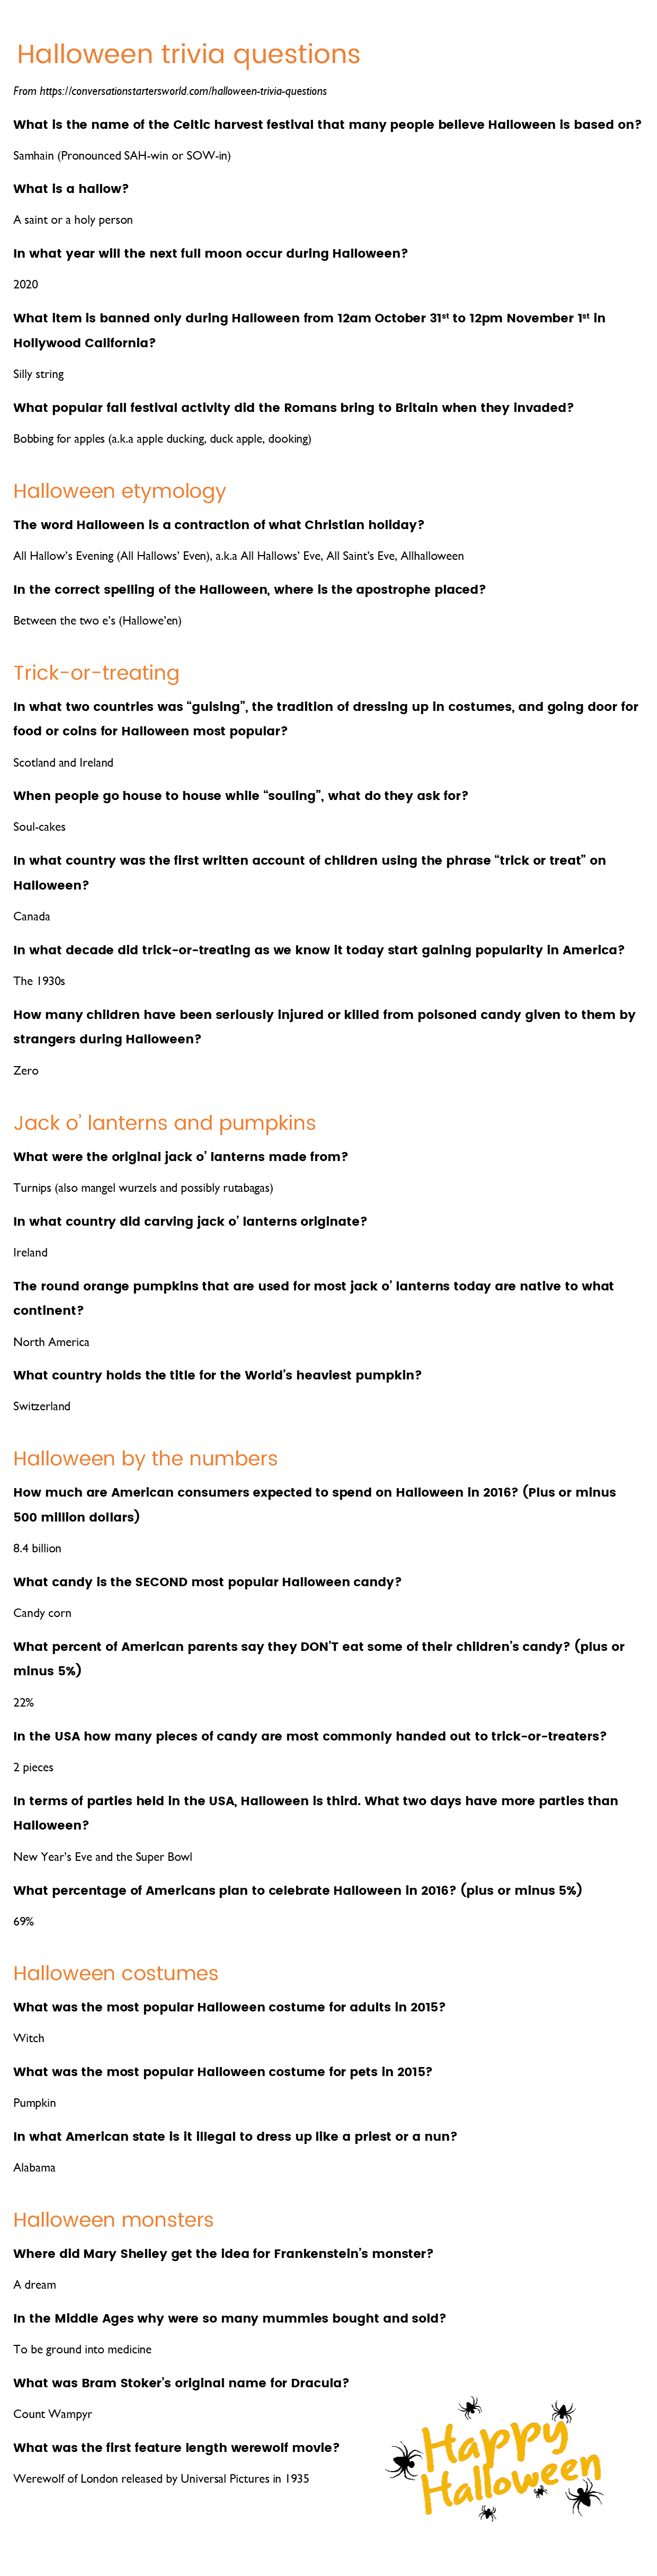 29 Challenging Halloween Trivia Questions - How Many Can You Answer? - Free Printable Halloween Quiz